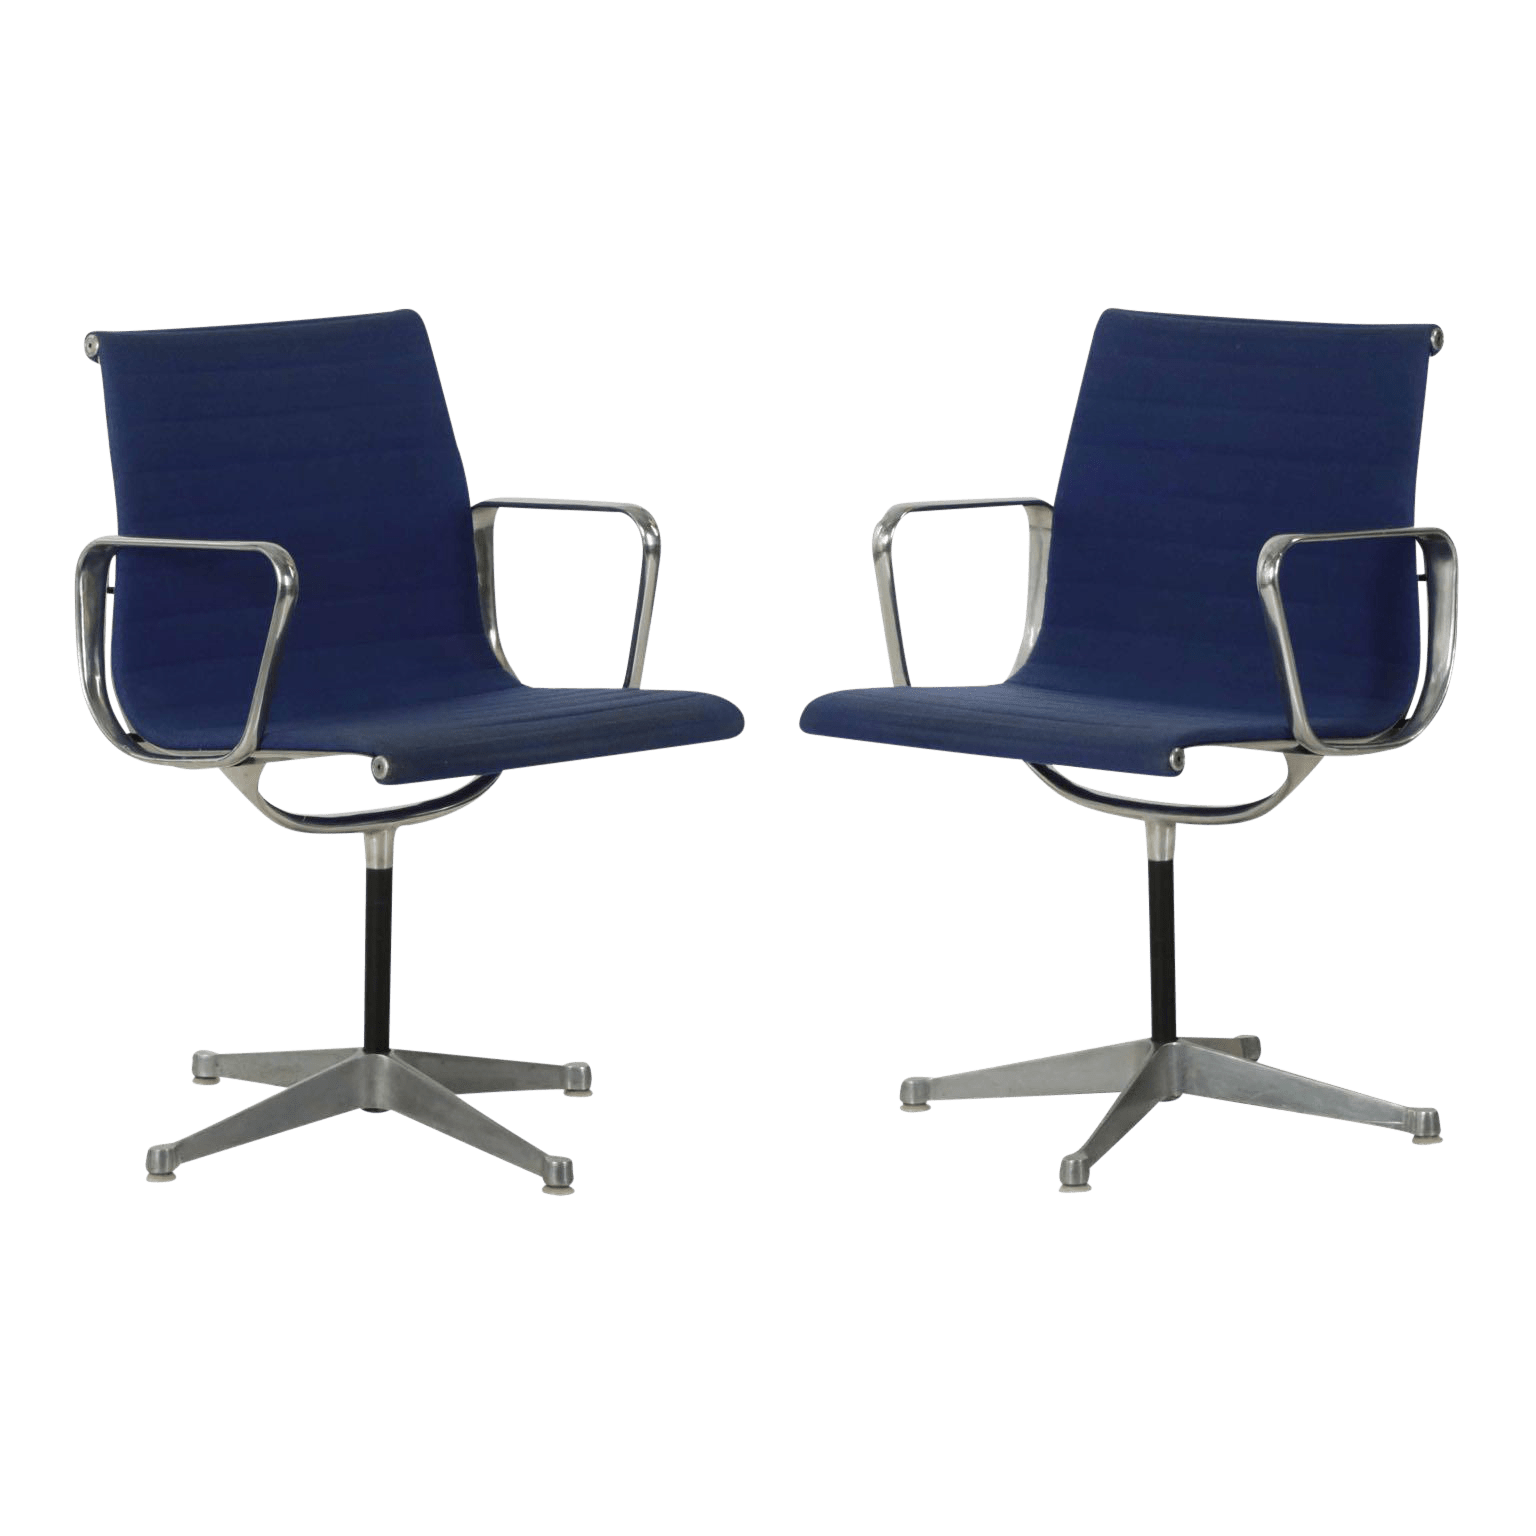 Silla Charles Eames Charles Eames For Herman Miller Blue Swivel Chairs A Pair